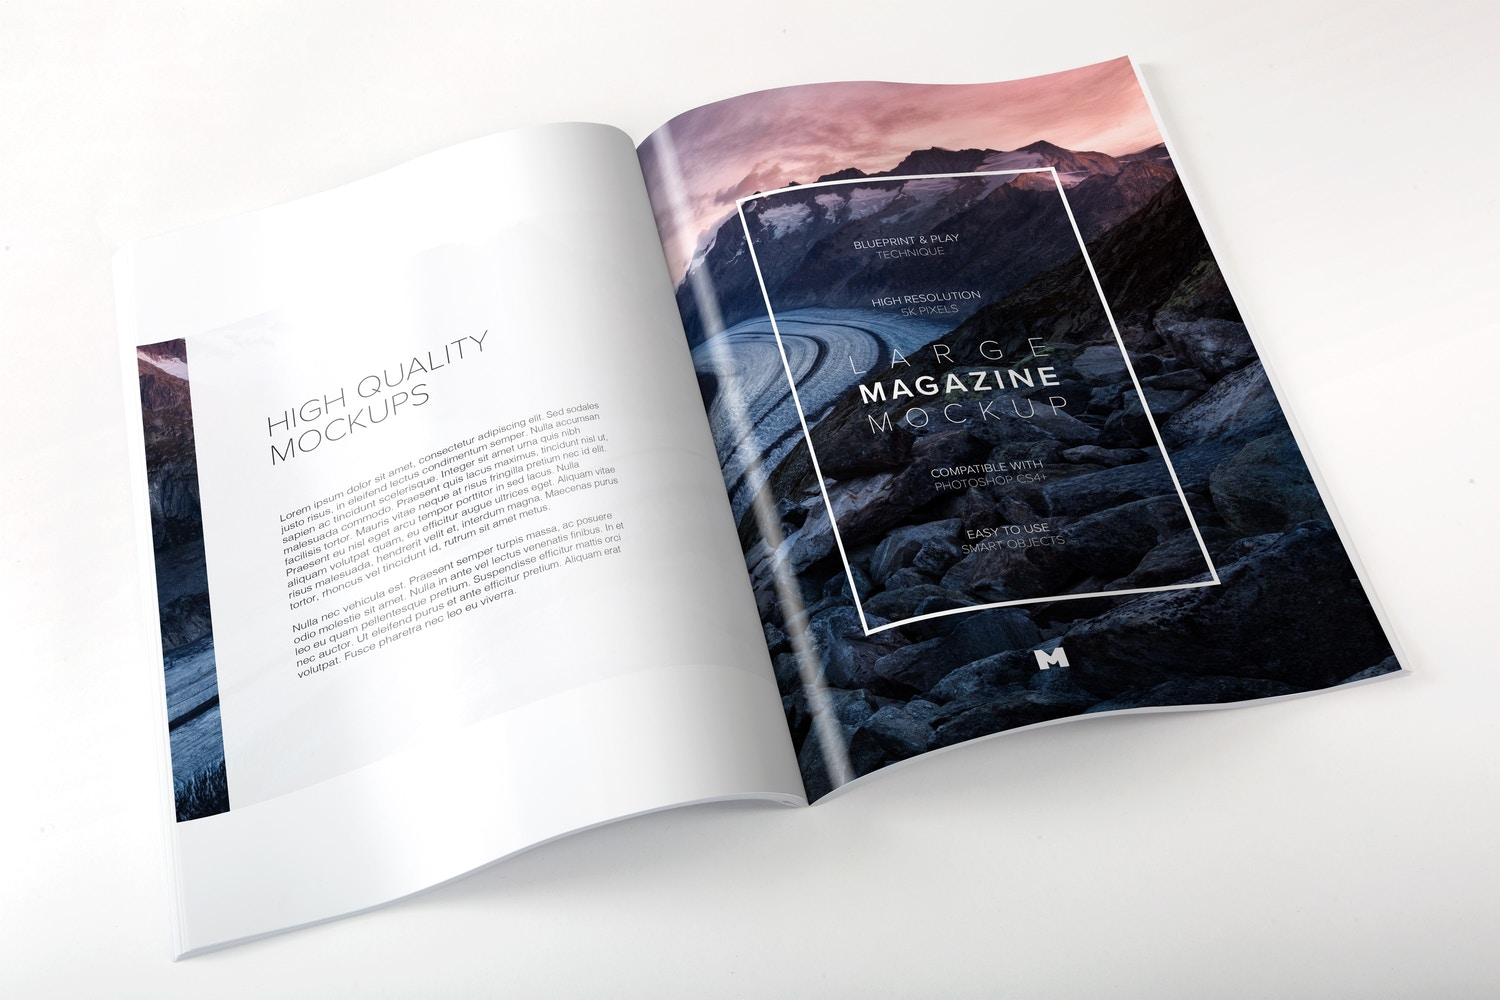 Large Magazine Spreads Mockup by Original Mockups on Original Mockups